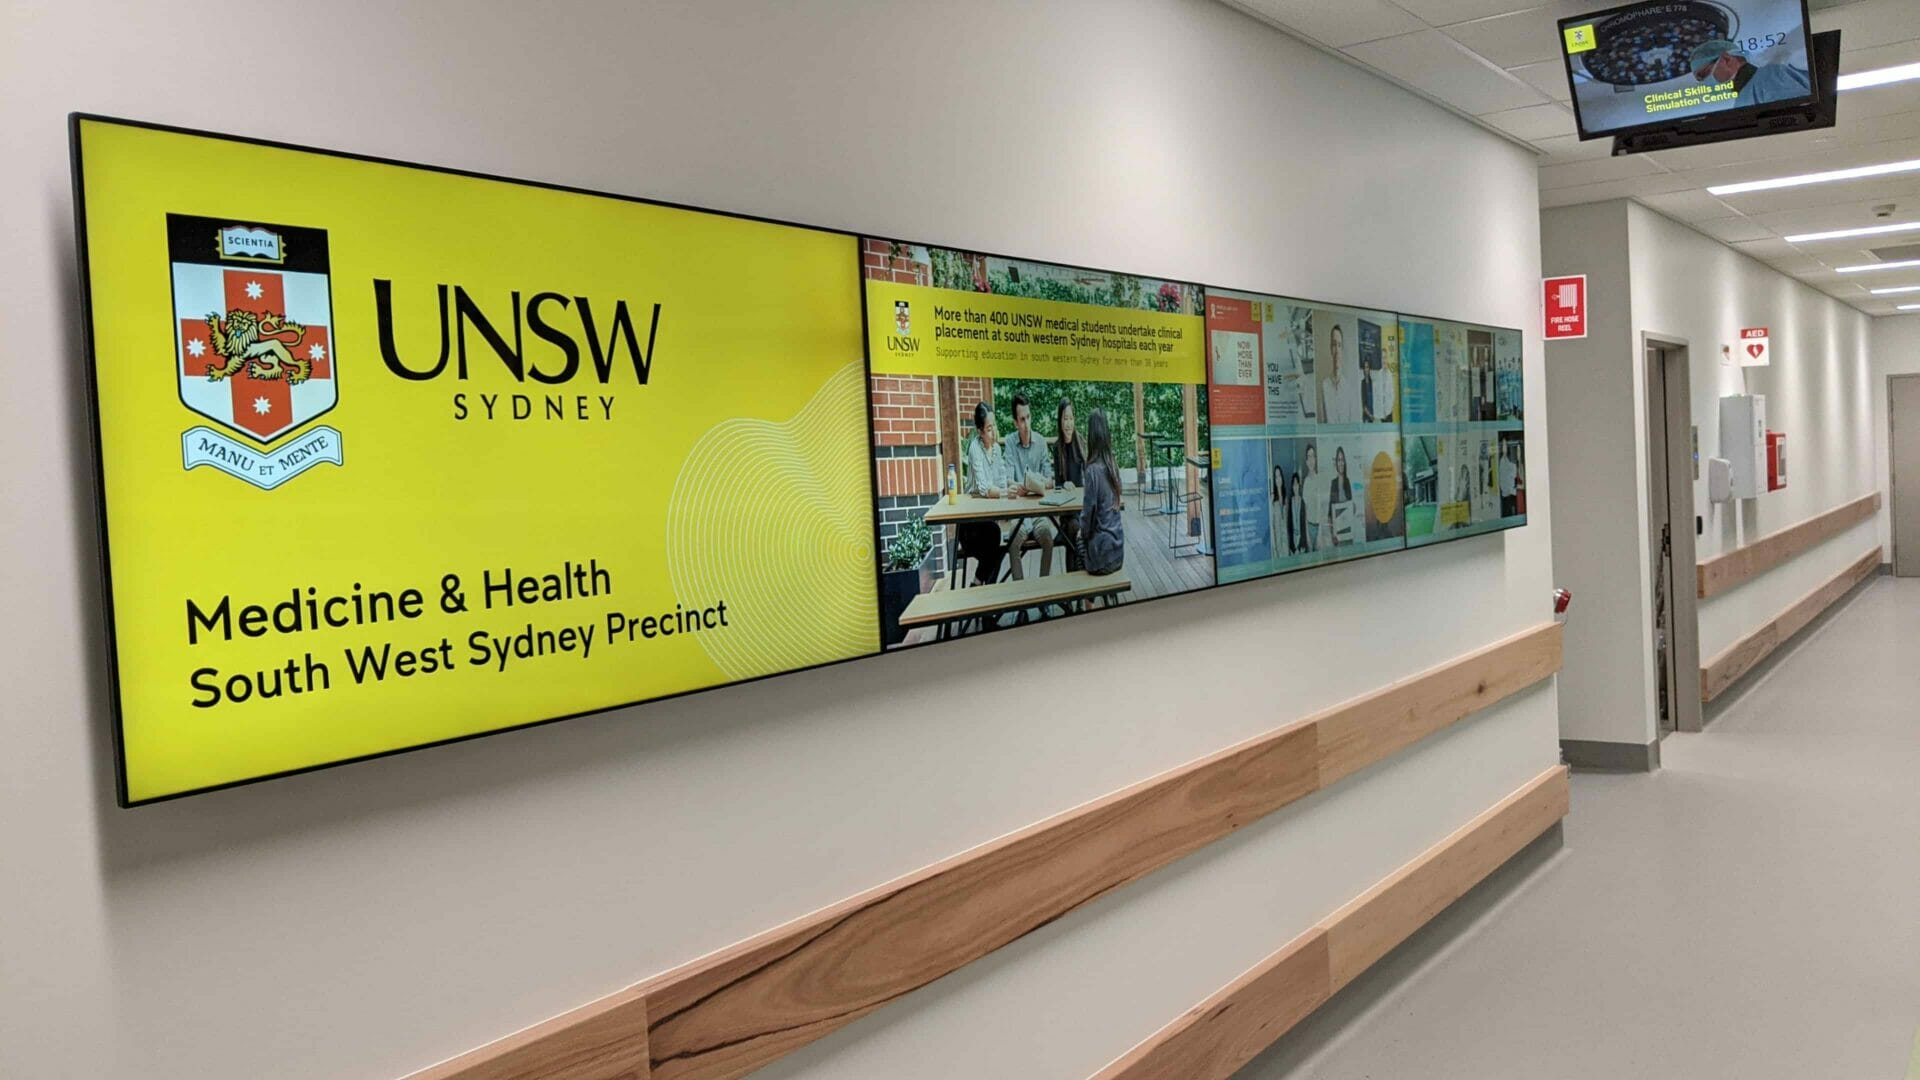 Advertise Me UNSW Medicine Health South West Sydney Precinct 4x1 Video Wall 1